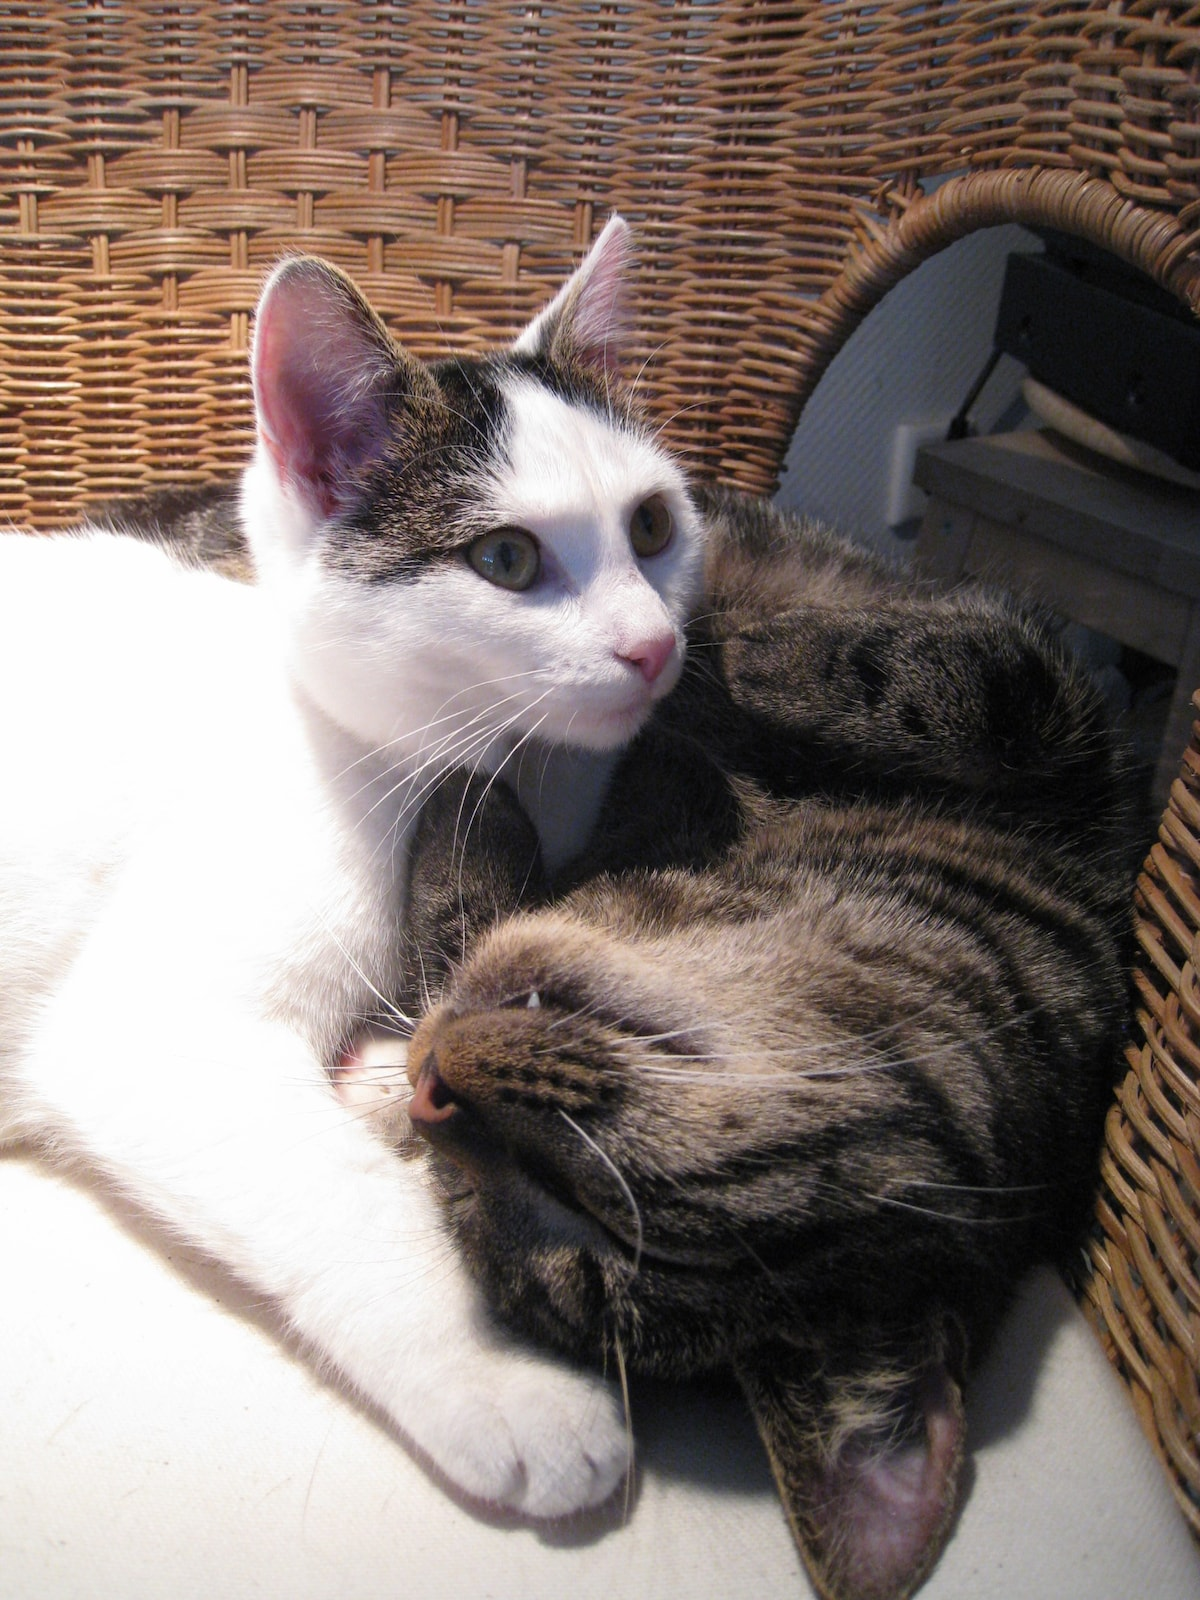 ***Hugo & Lilly, my two cats***